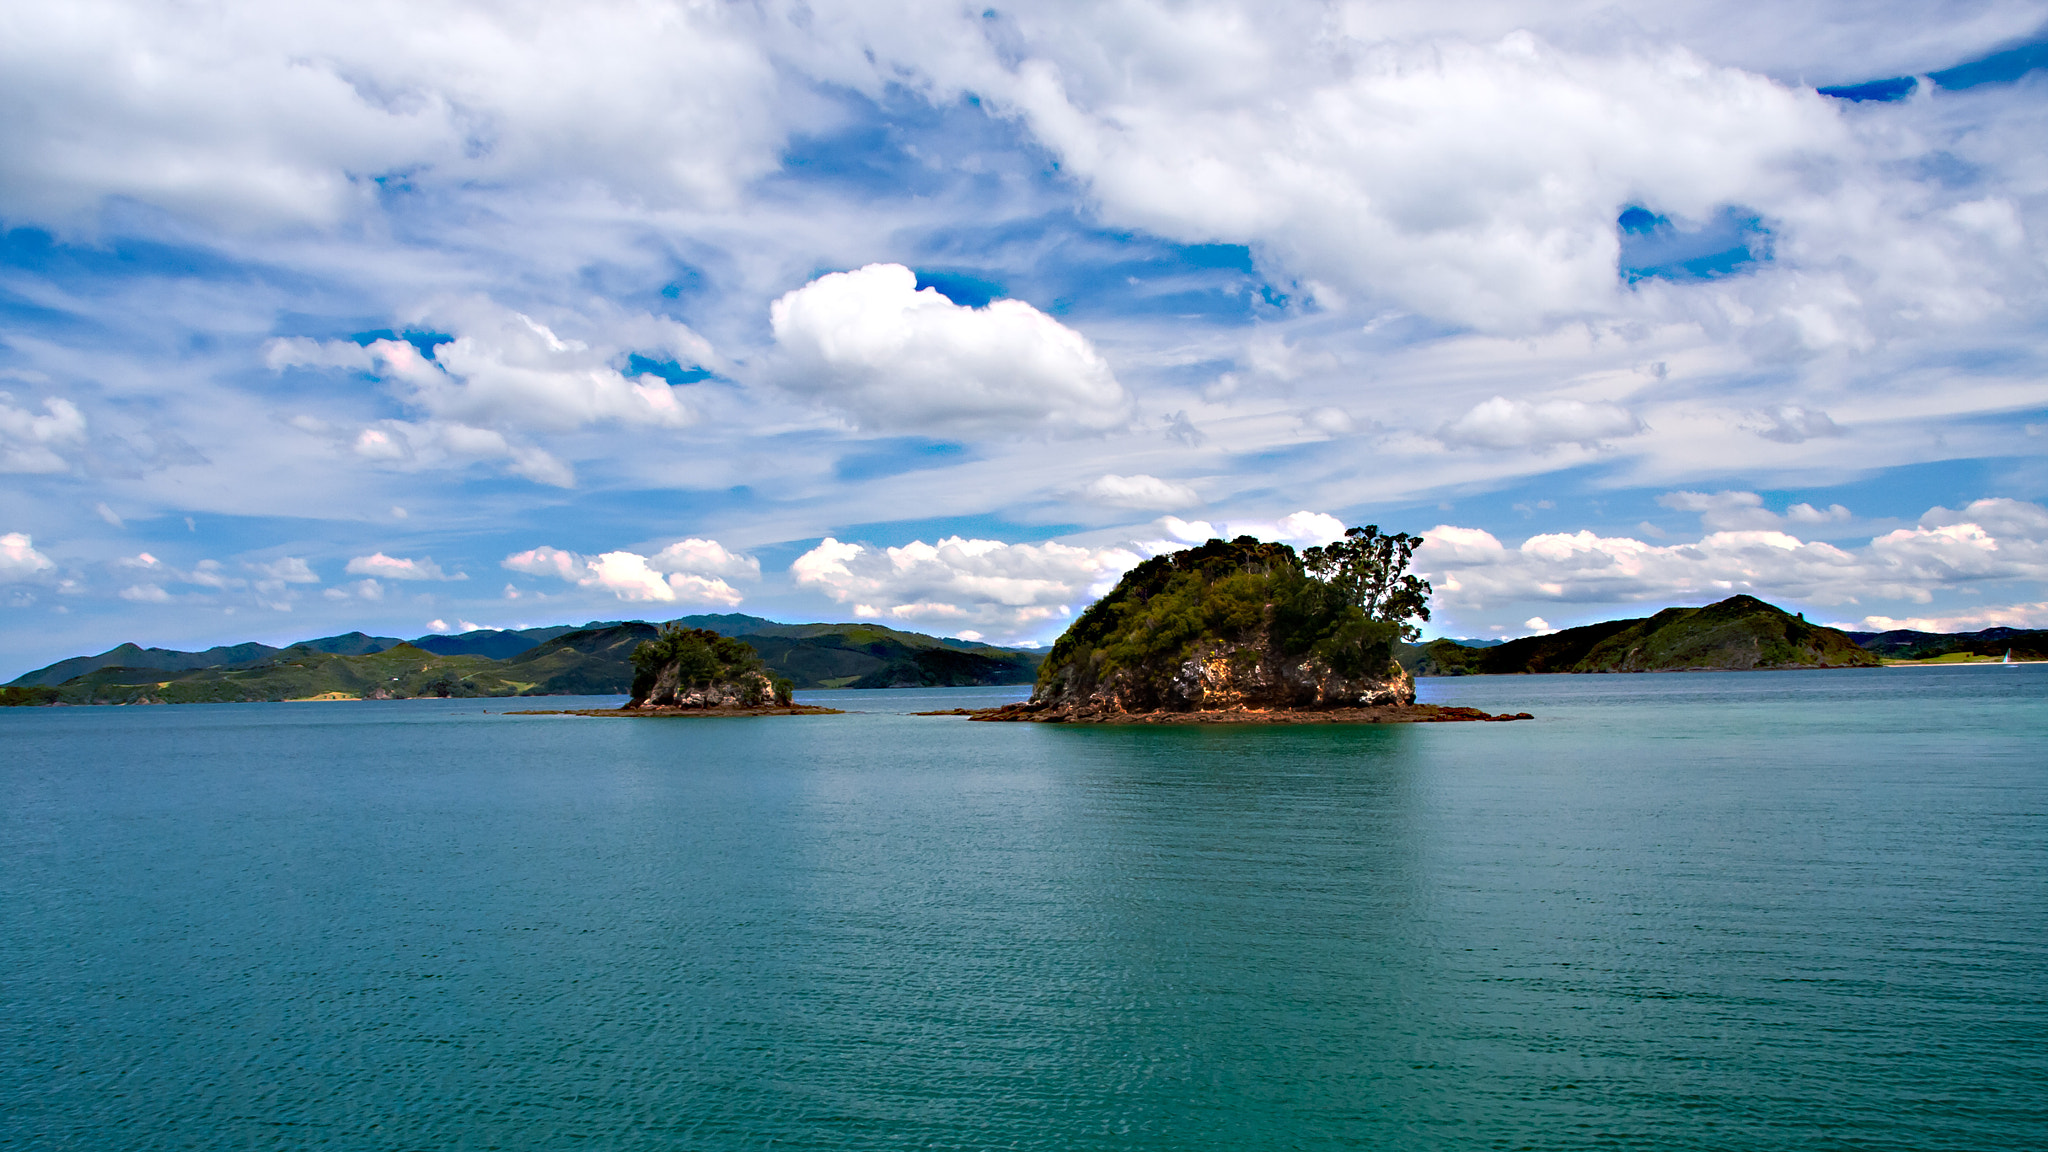 Photograph The Bay of Islands by Clive Hollingshead on 500px